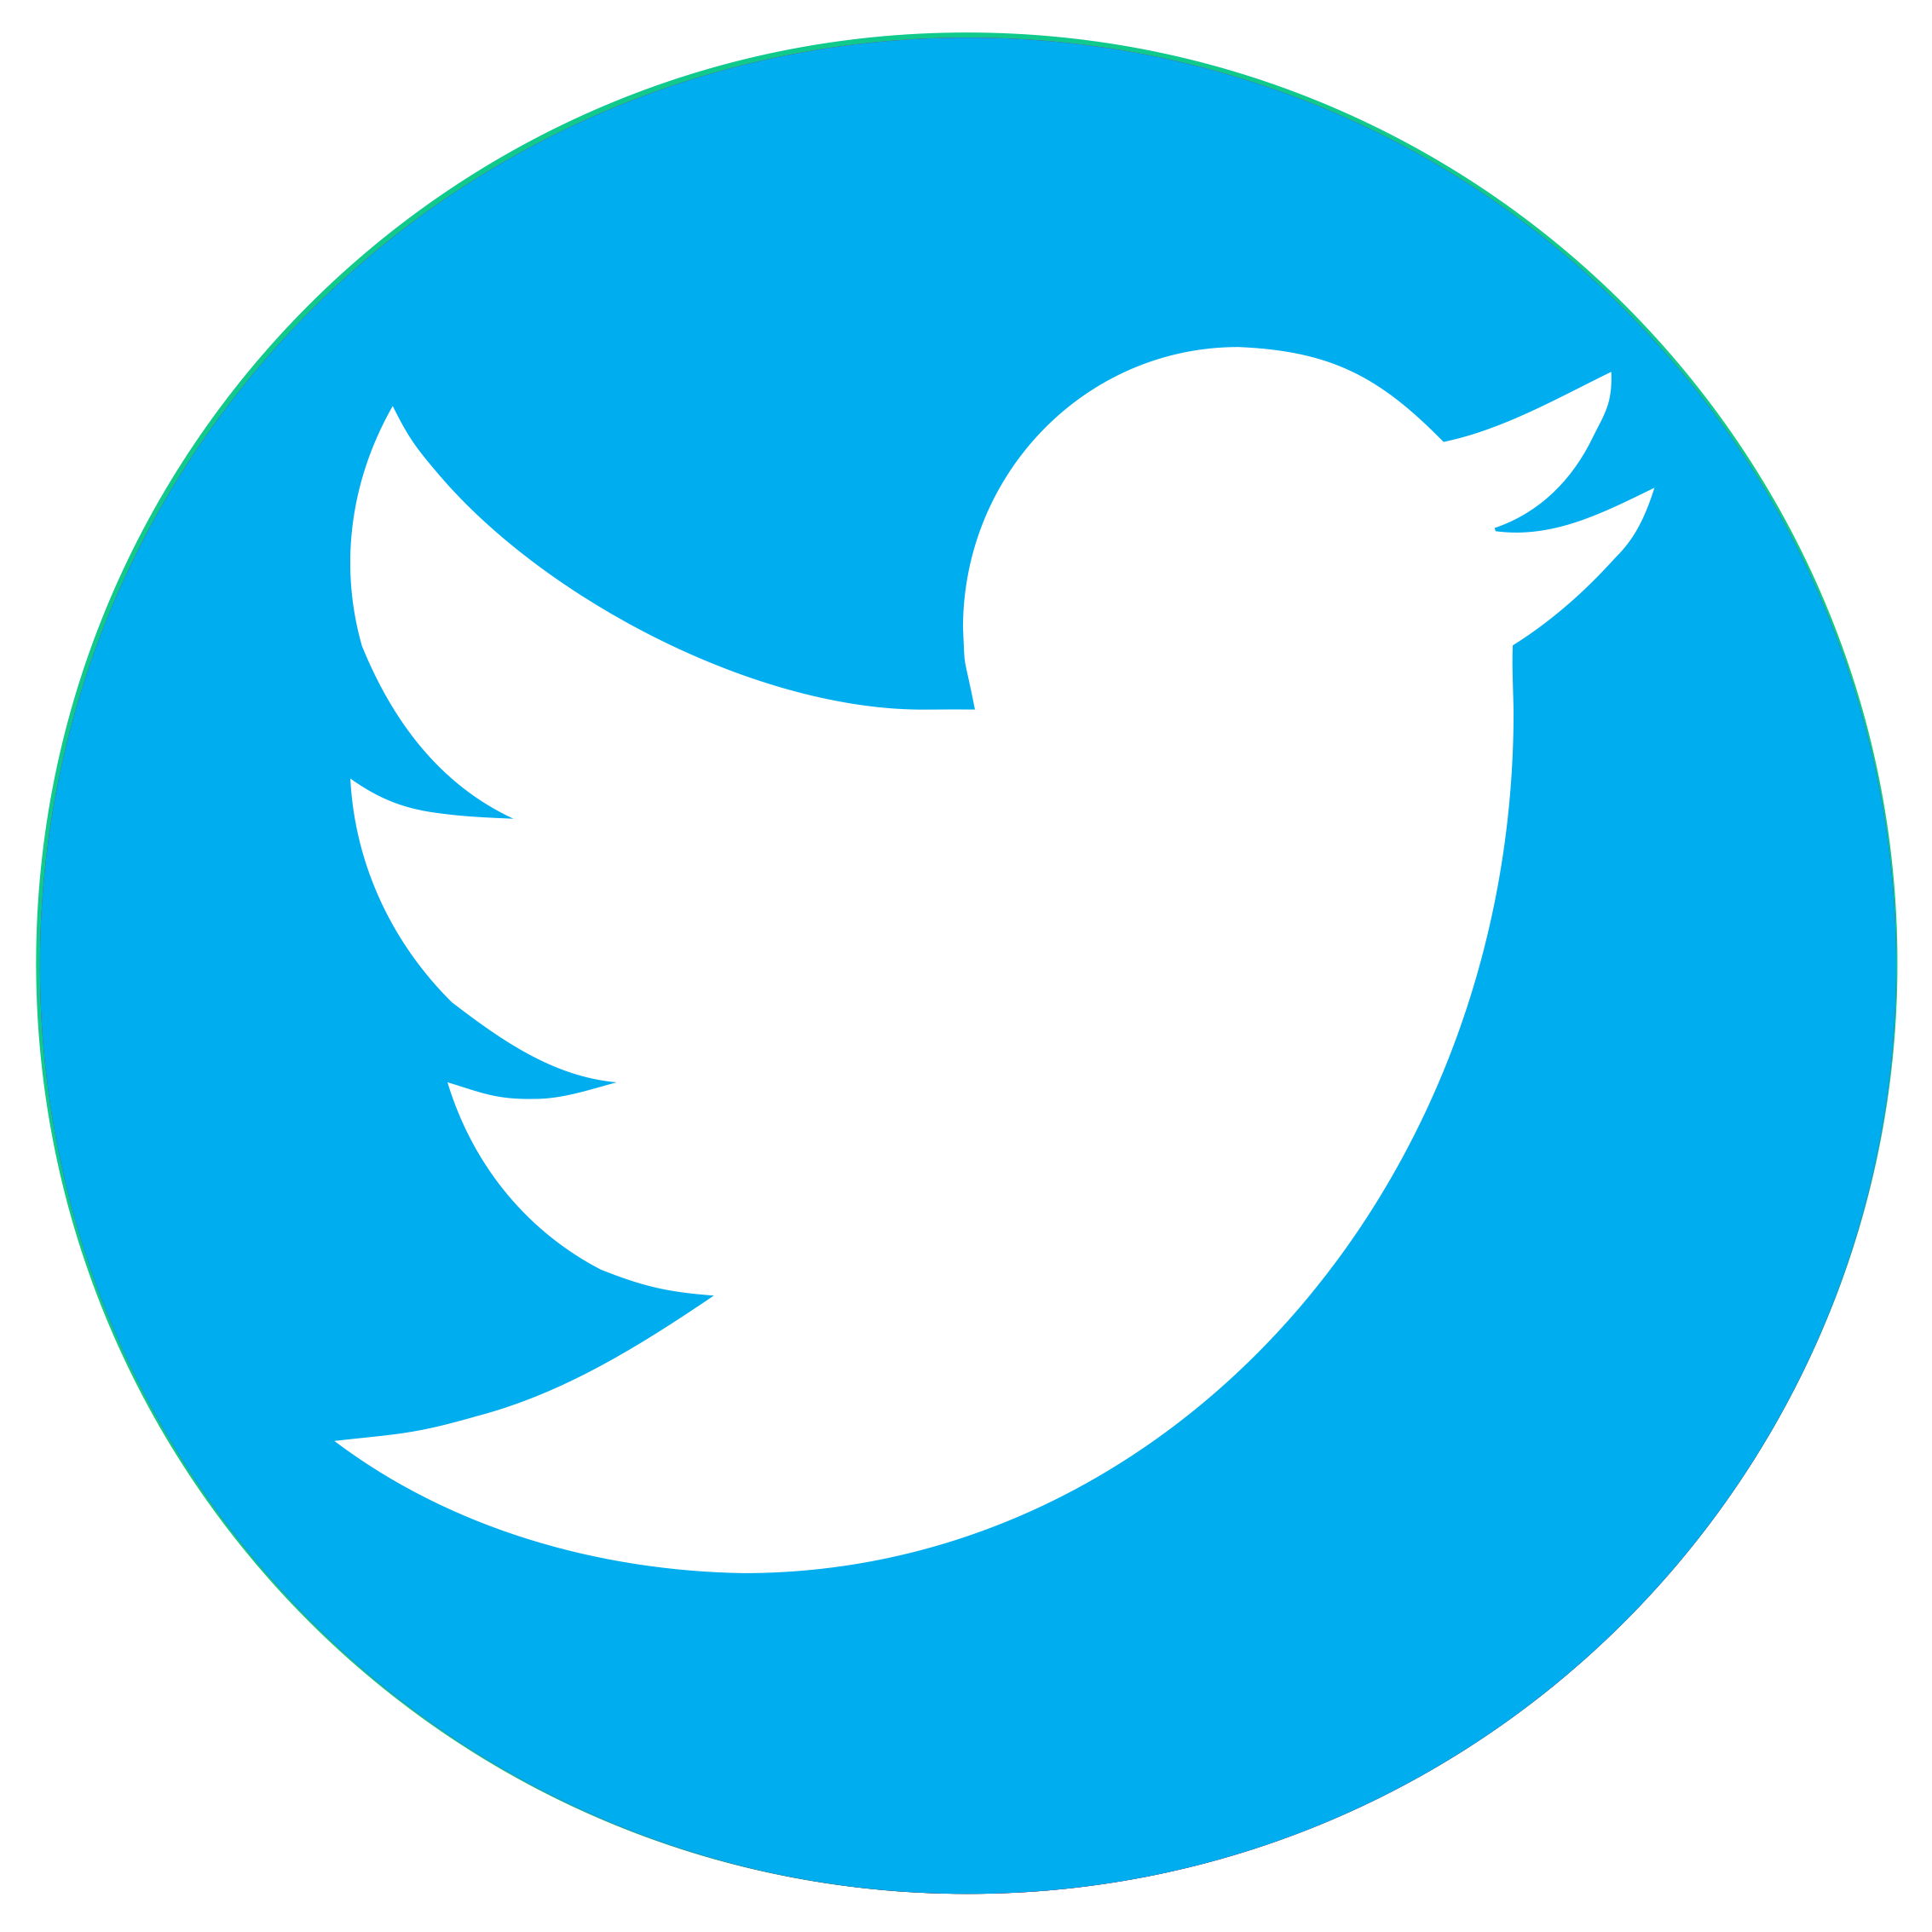 twitter round logo png transparent background 7